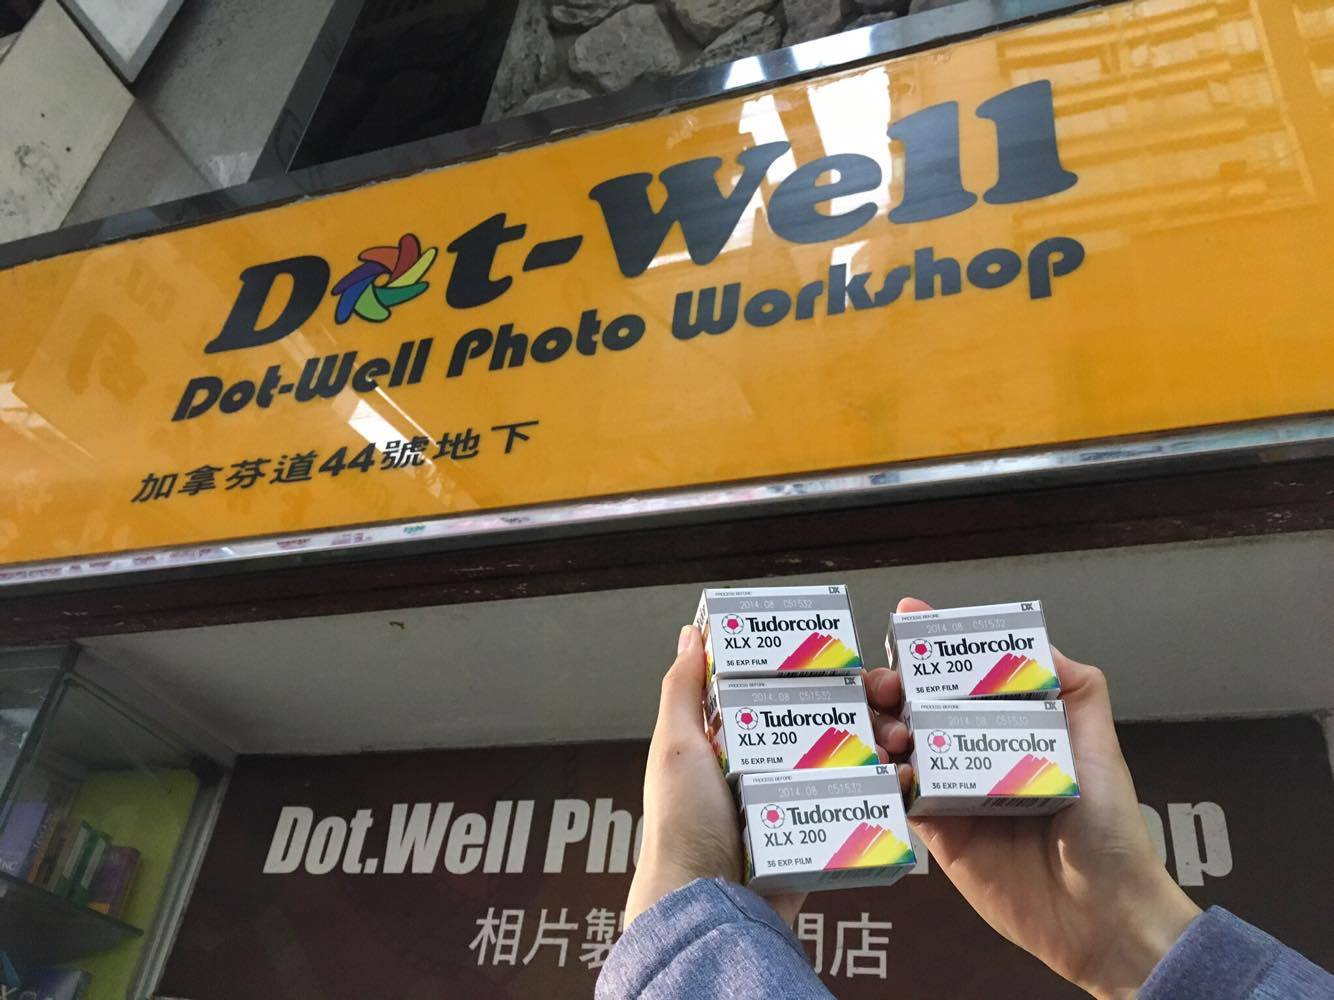 Where to buy film in Hong Kong